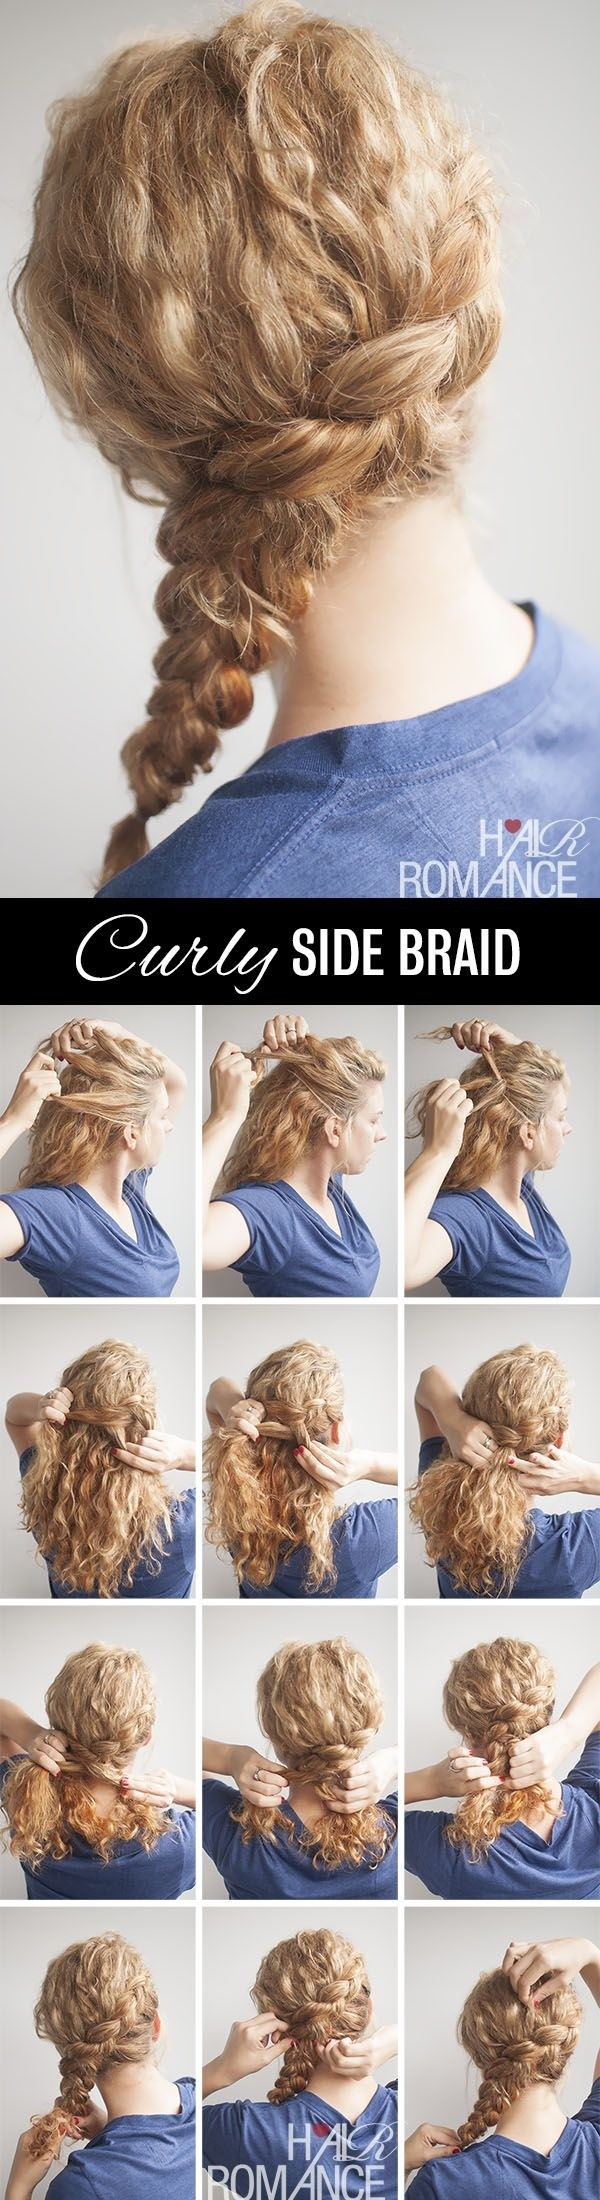 Side braid hairstyle tutorial for curly hair